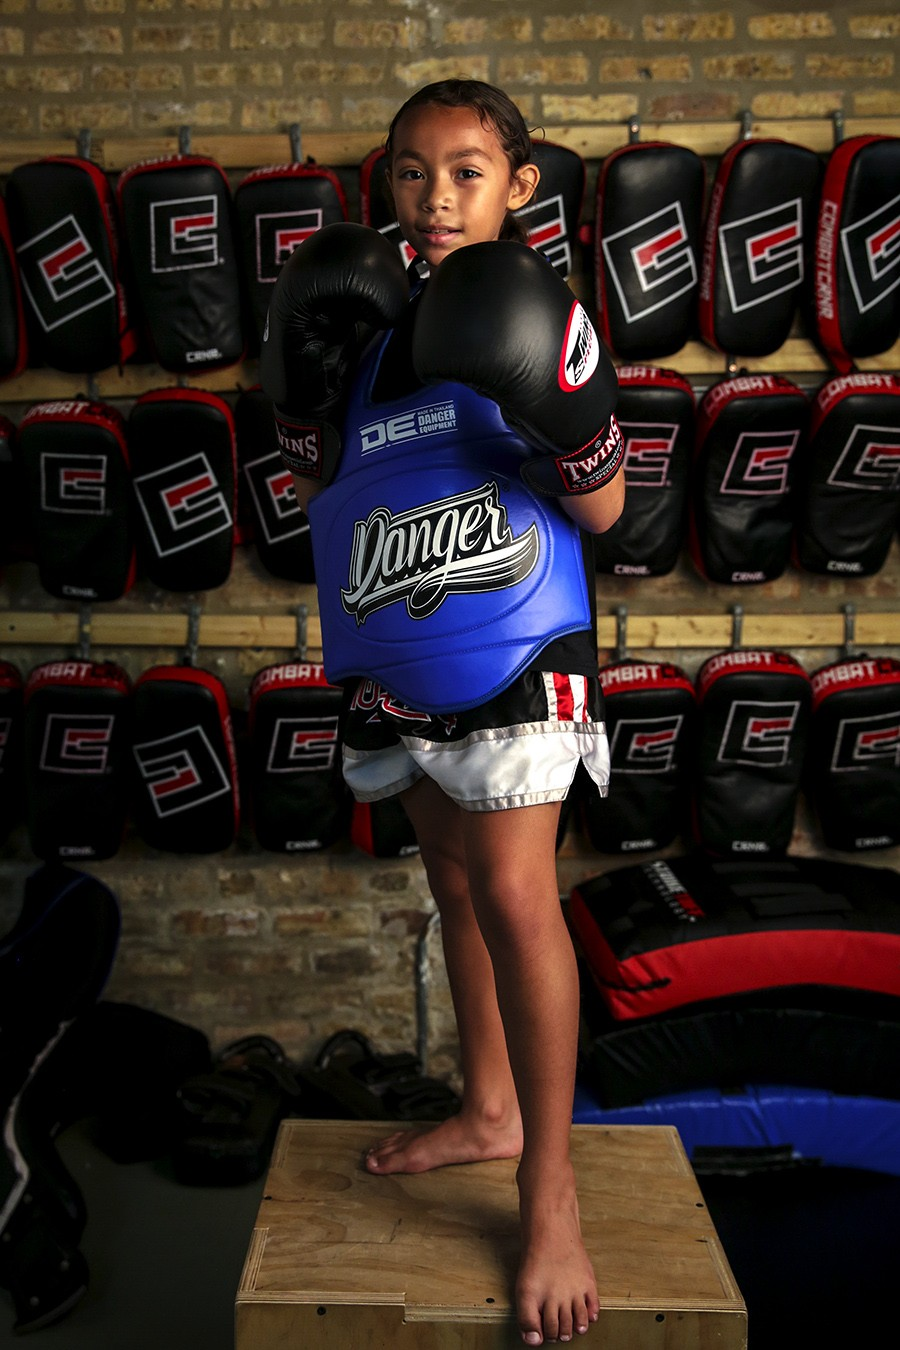 """Chanelle Ortiz, nine, Portage Park Muay Thai - """"I think the kids at school should try this because it's so much fun and I get to go to different places for tournaments and meet new friends. My coaches taught me how to punch and kick, and I think my friends would like to learn that too. It's my favorite thing to do after school."""" - GEOFF STELLFOX"""